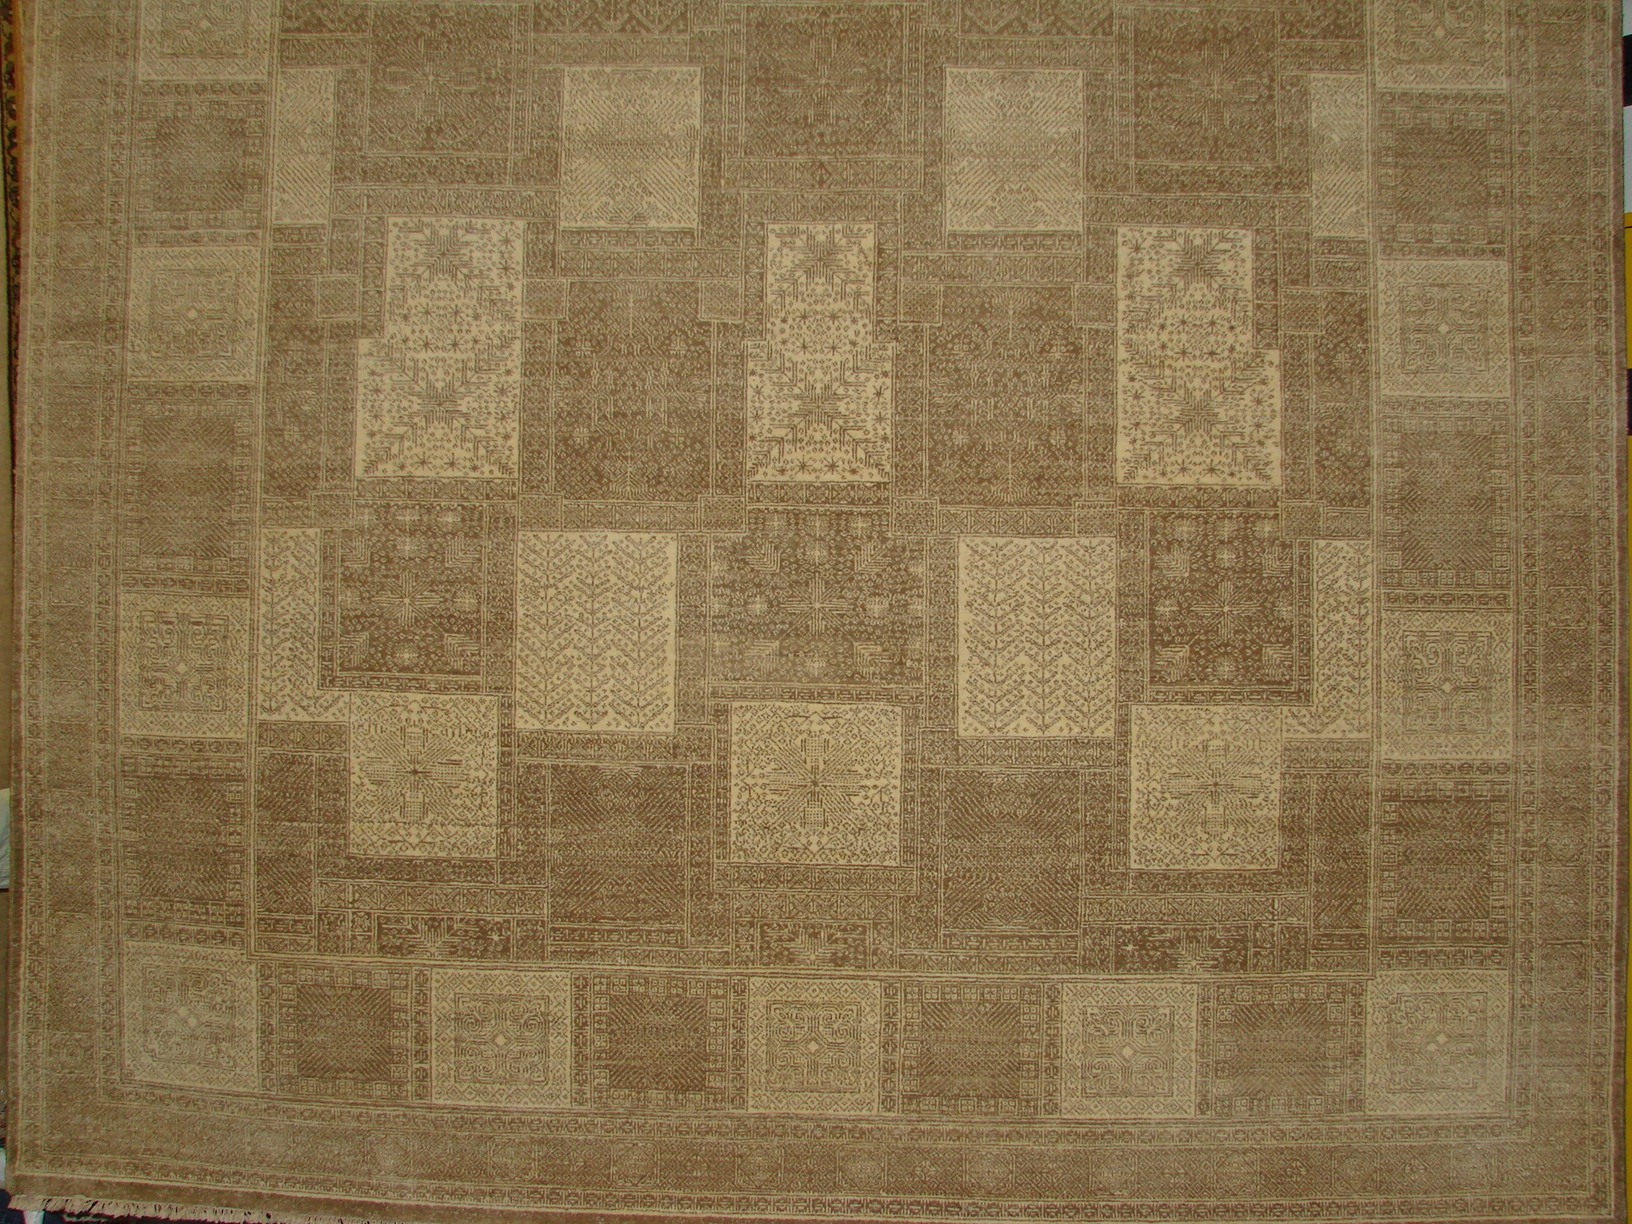 8x10 Contemporary Hand Knotted Wool Area Rug - MR11459